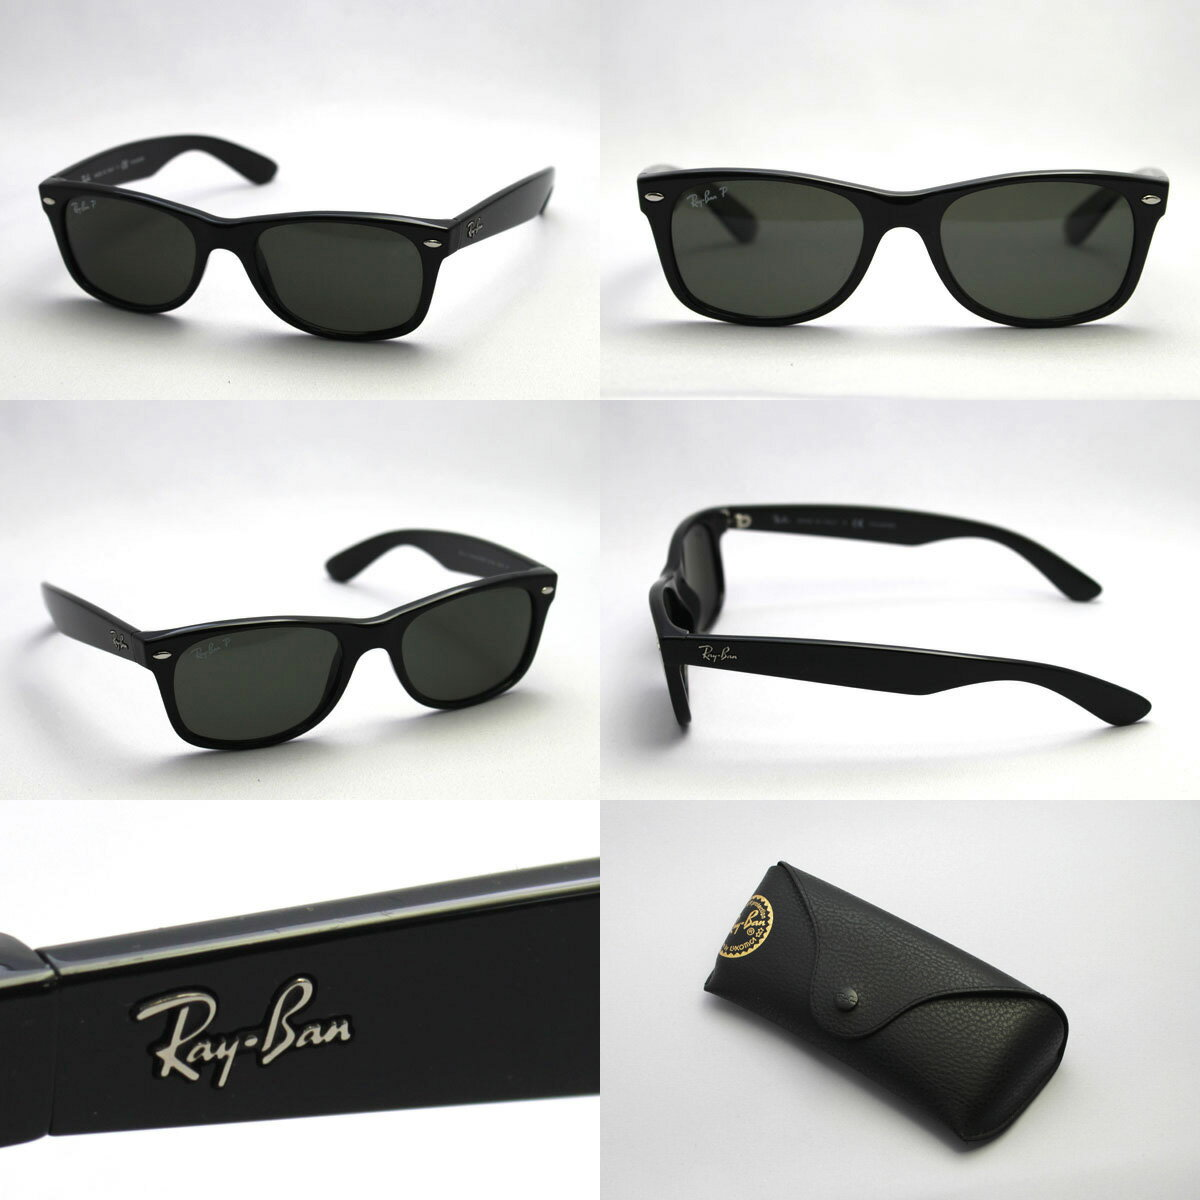 Cheap Ray Ban New Arrivals Outlet Store Online. Ray Ban is the global leader in premium eyewear market and by far the best-selling eyewear brand in the world!